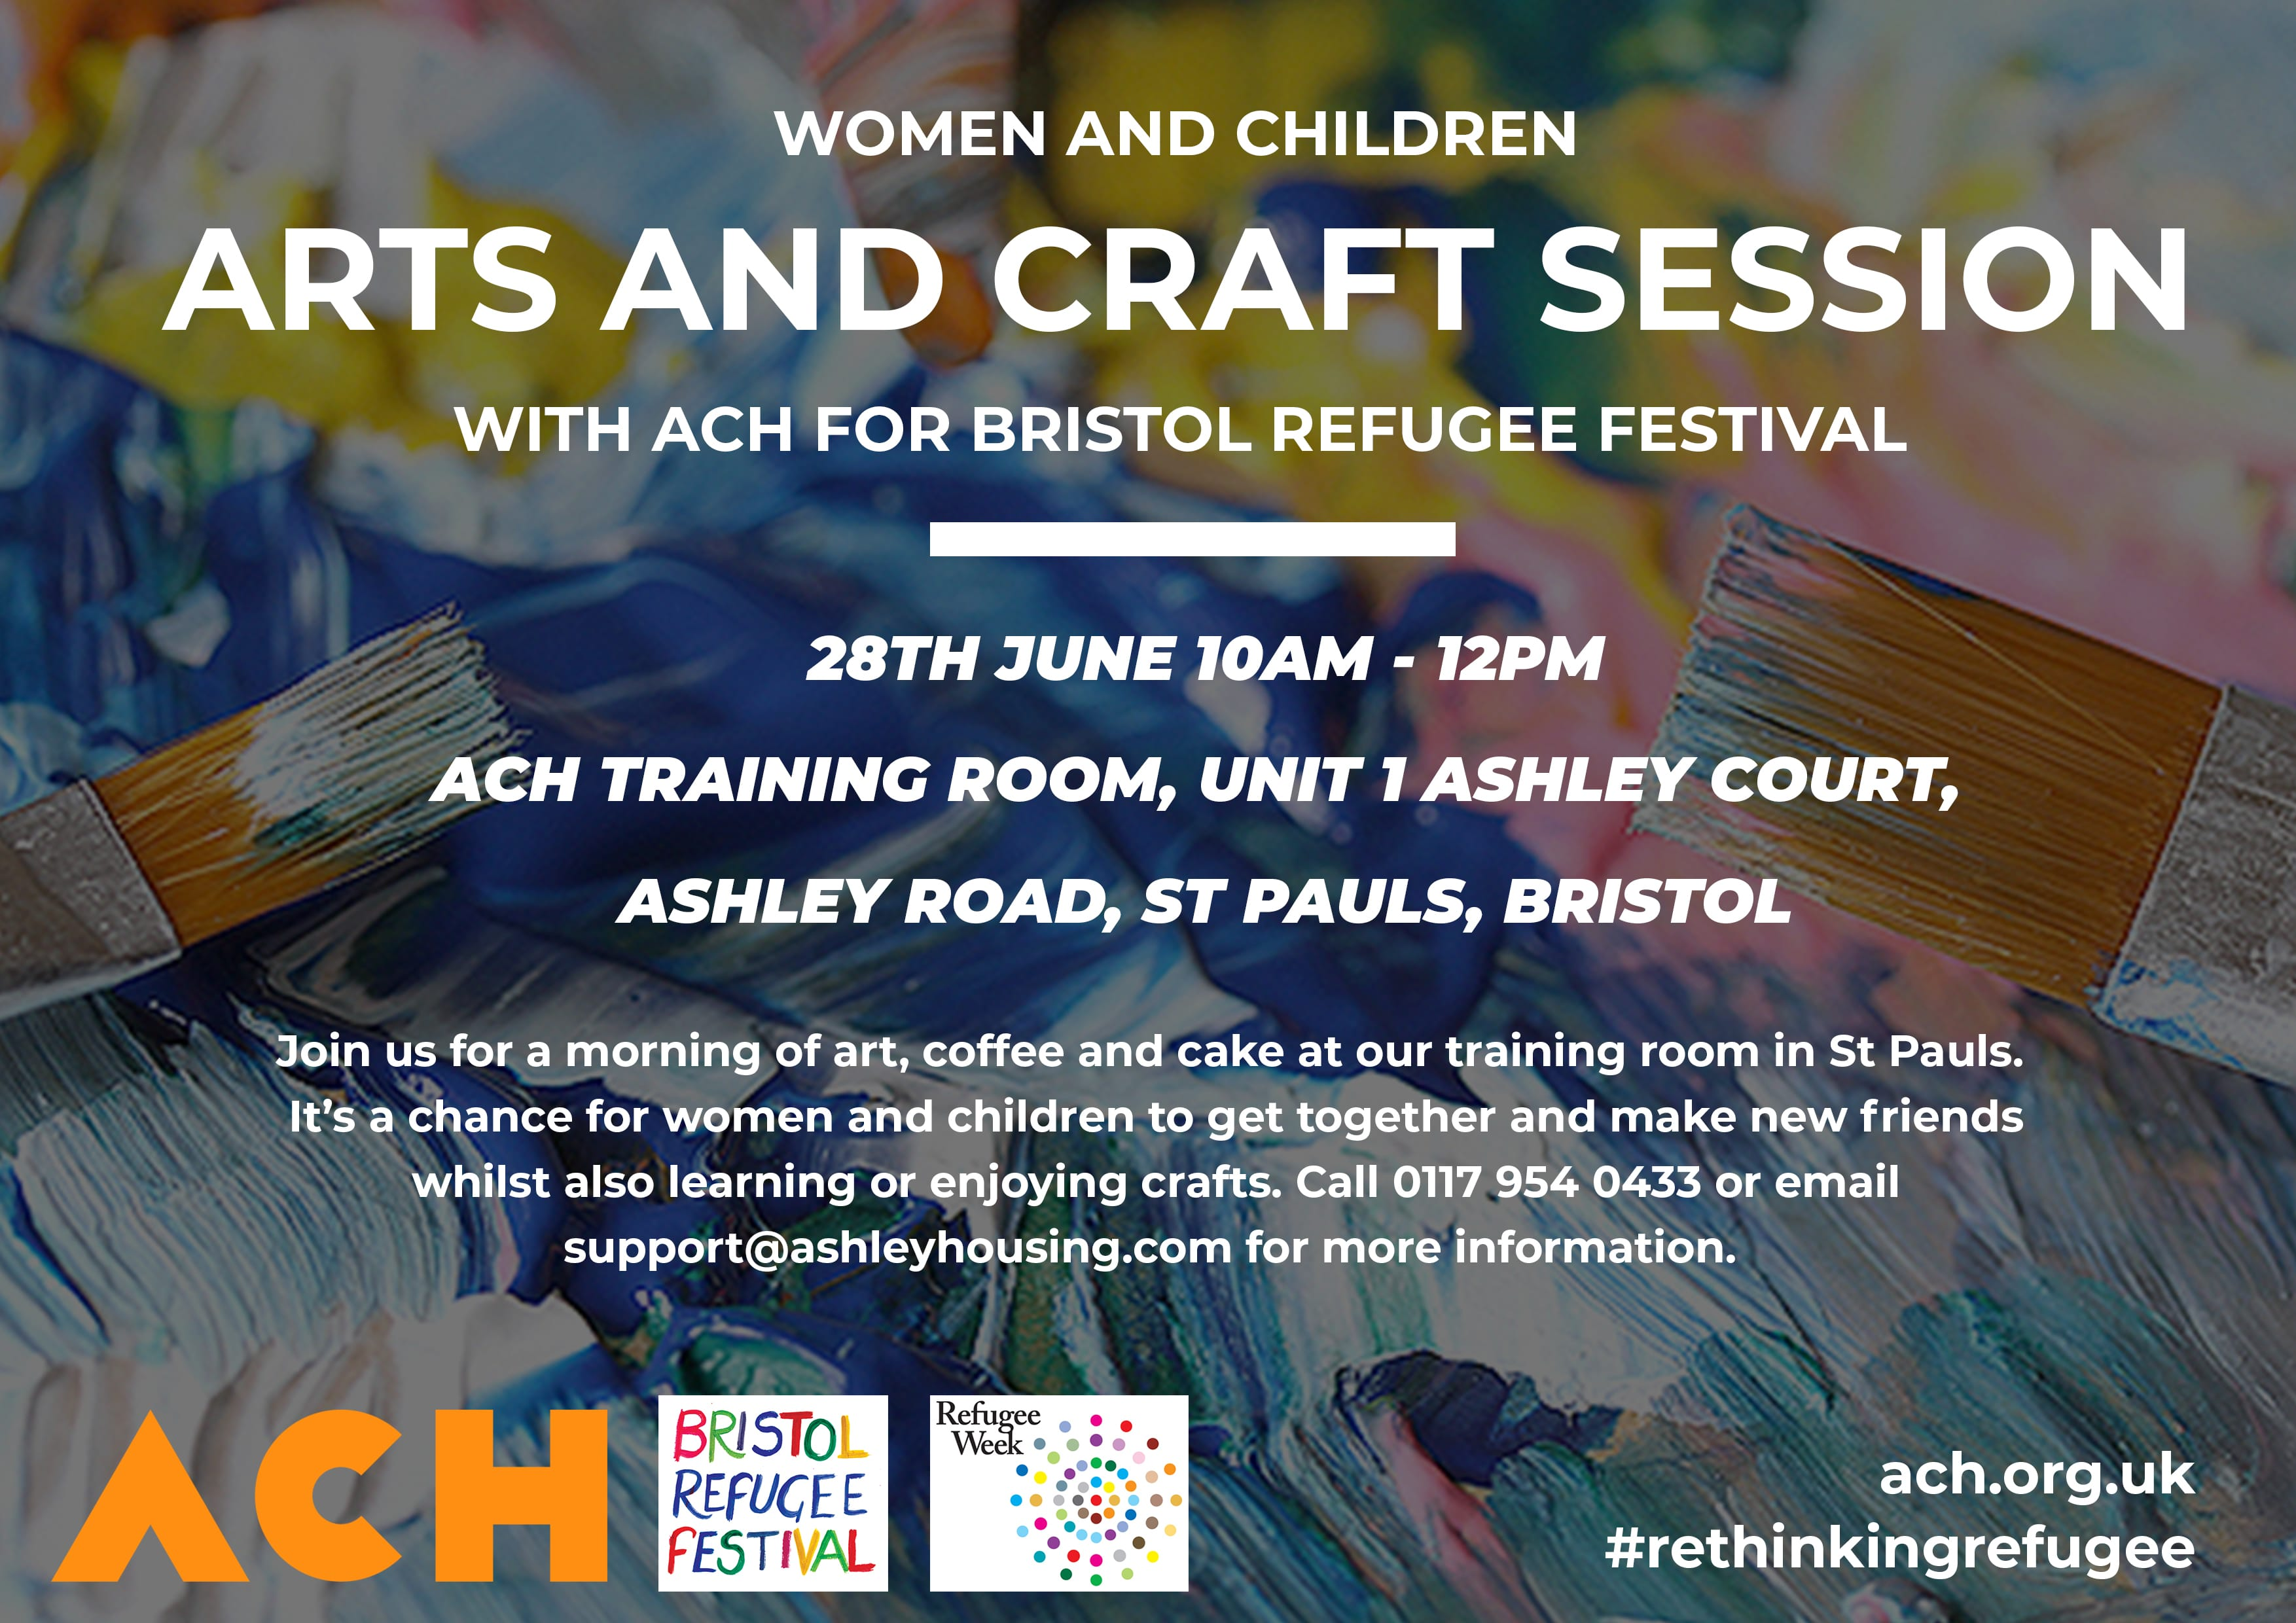 ACH arts and craft poster